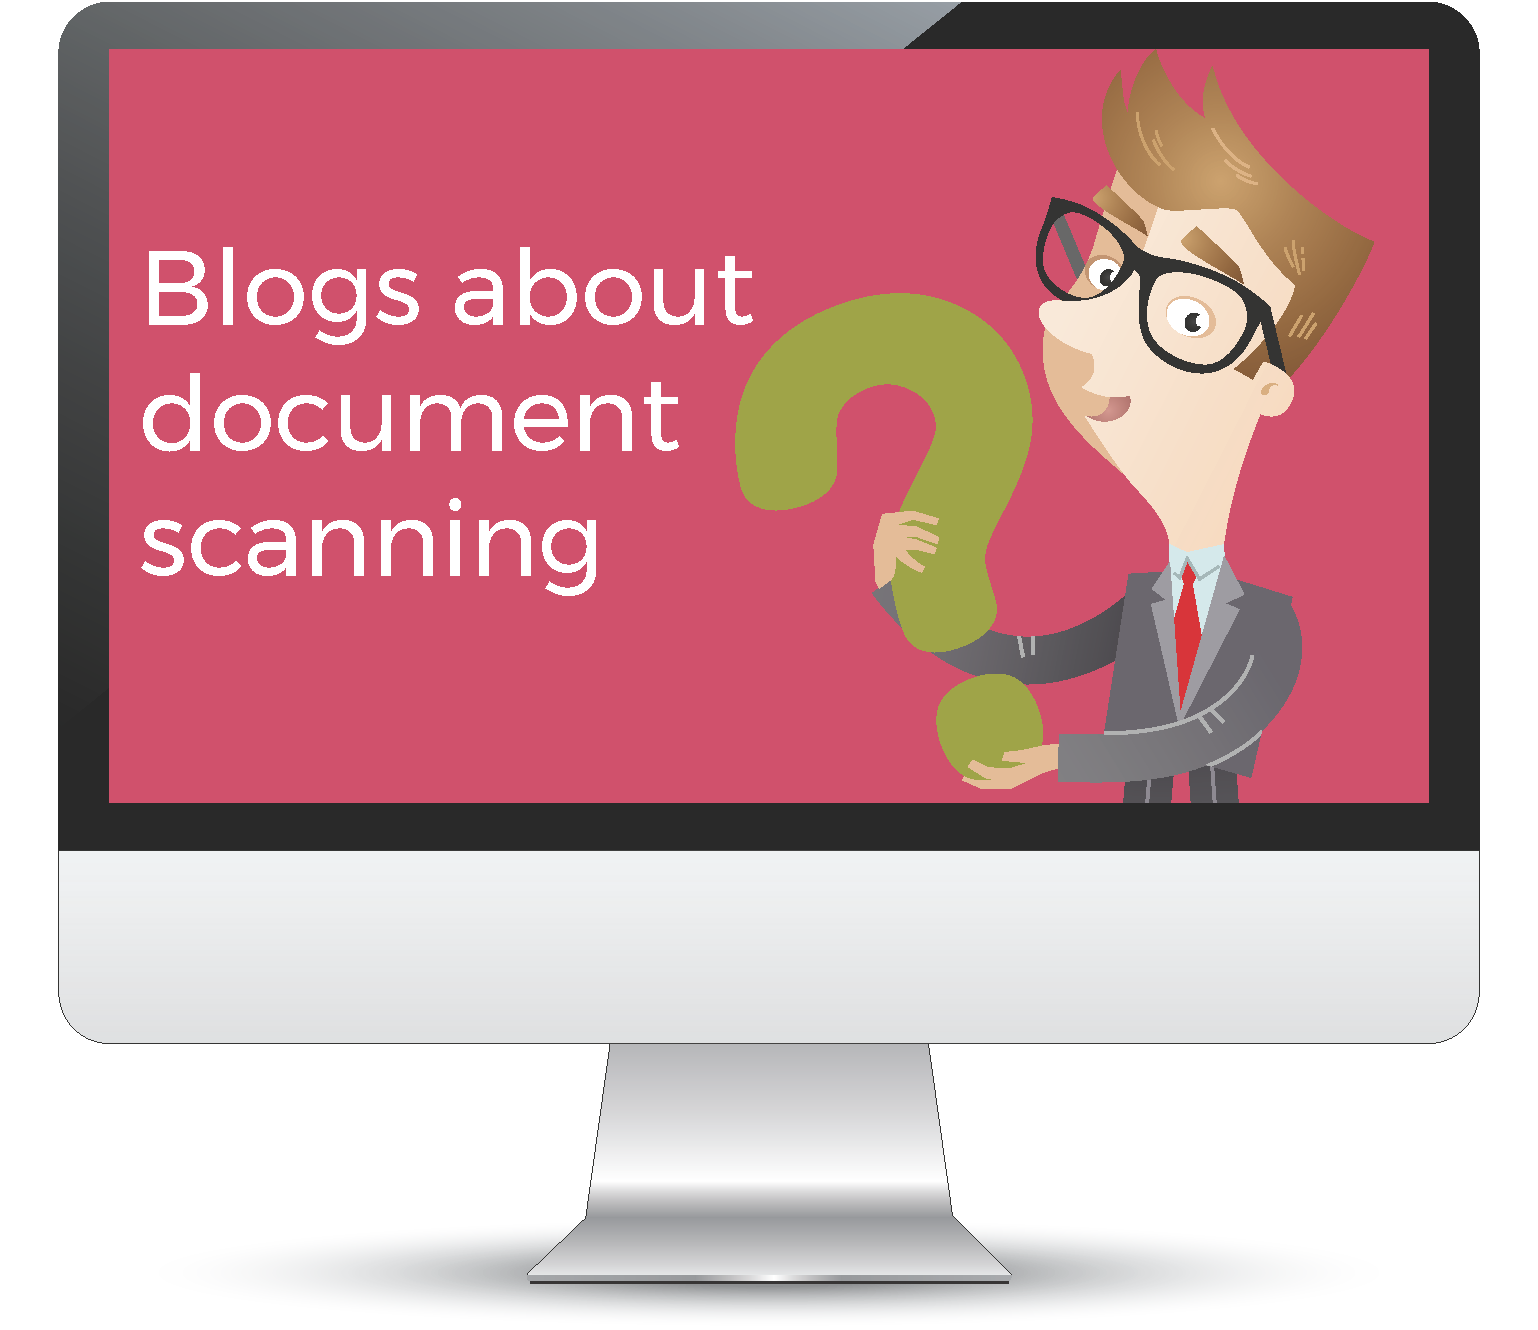 Blogs about document scanning